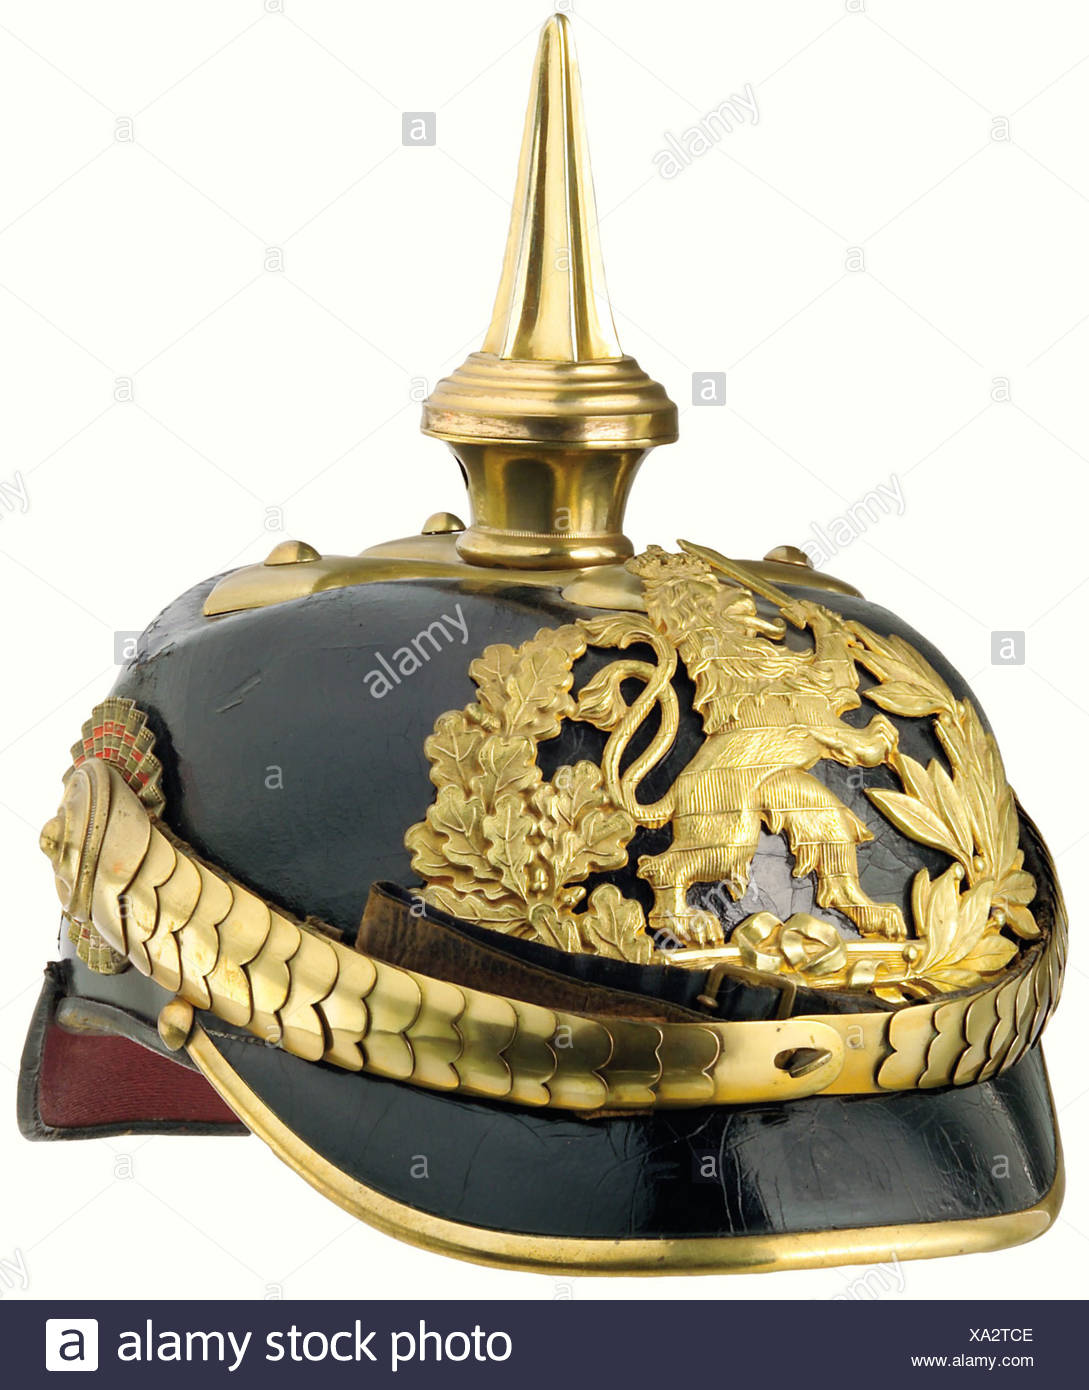 Hesse: A helmet for officers, of infantry regiments Nos. 116, 117 (until 1898), 118 and 168. The crown of the leather skull is slightly sunken, the lacquer shows a little crazing, and the rear peak is somewhat loose. Brass fittings with some traces of gilding, and a gilt plate. Cambered chinscales attached to officers' style cockades. A yellow ribbed silk liner, and a dark brown sweatband with slight traces of wear. Size 55. historic, historical, 19th century, object, objects, stills, clipping, clippings, cut out, cut-out, cut-outs, helmet, helmets, headpiece, , Additional-Rights-Clearances-NA - Stock Image